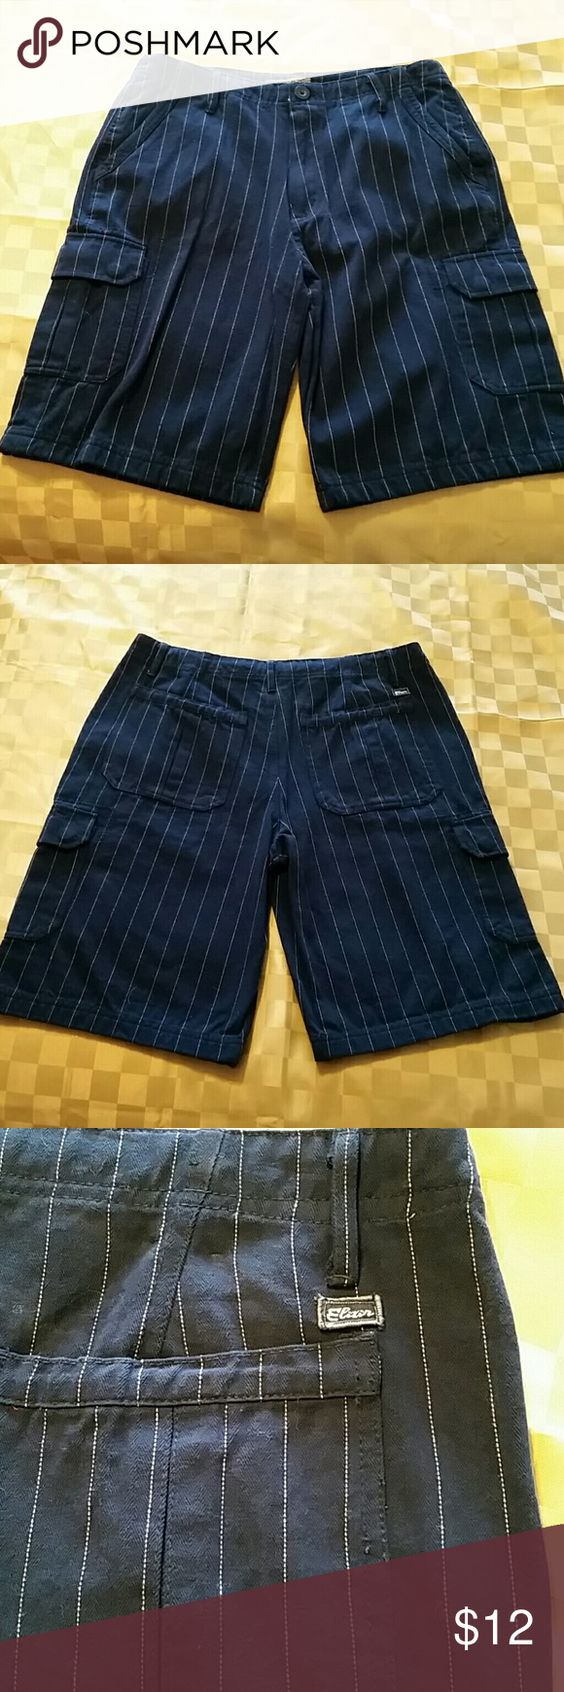 Men's Pinstripe Shorts Size 32, Navy Blue with a white pin stripe, also has cargo/side pockets. In great condition as they worn only one time. Elixer Shorts Cargo